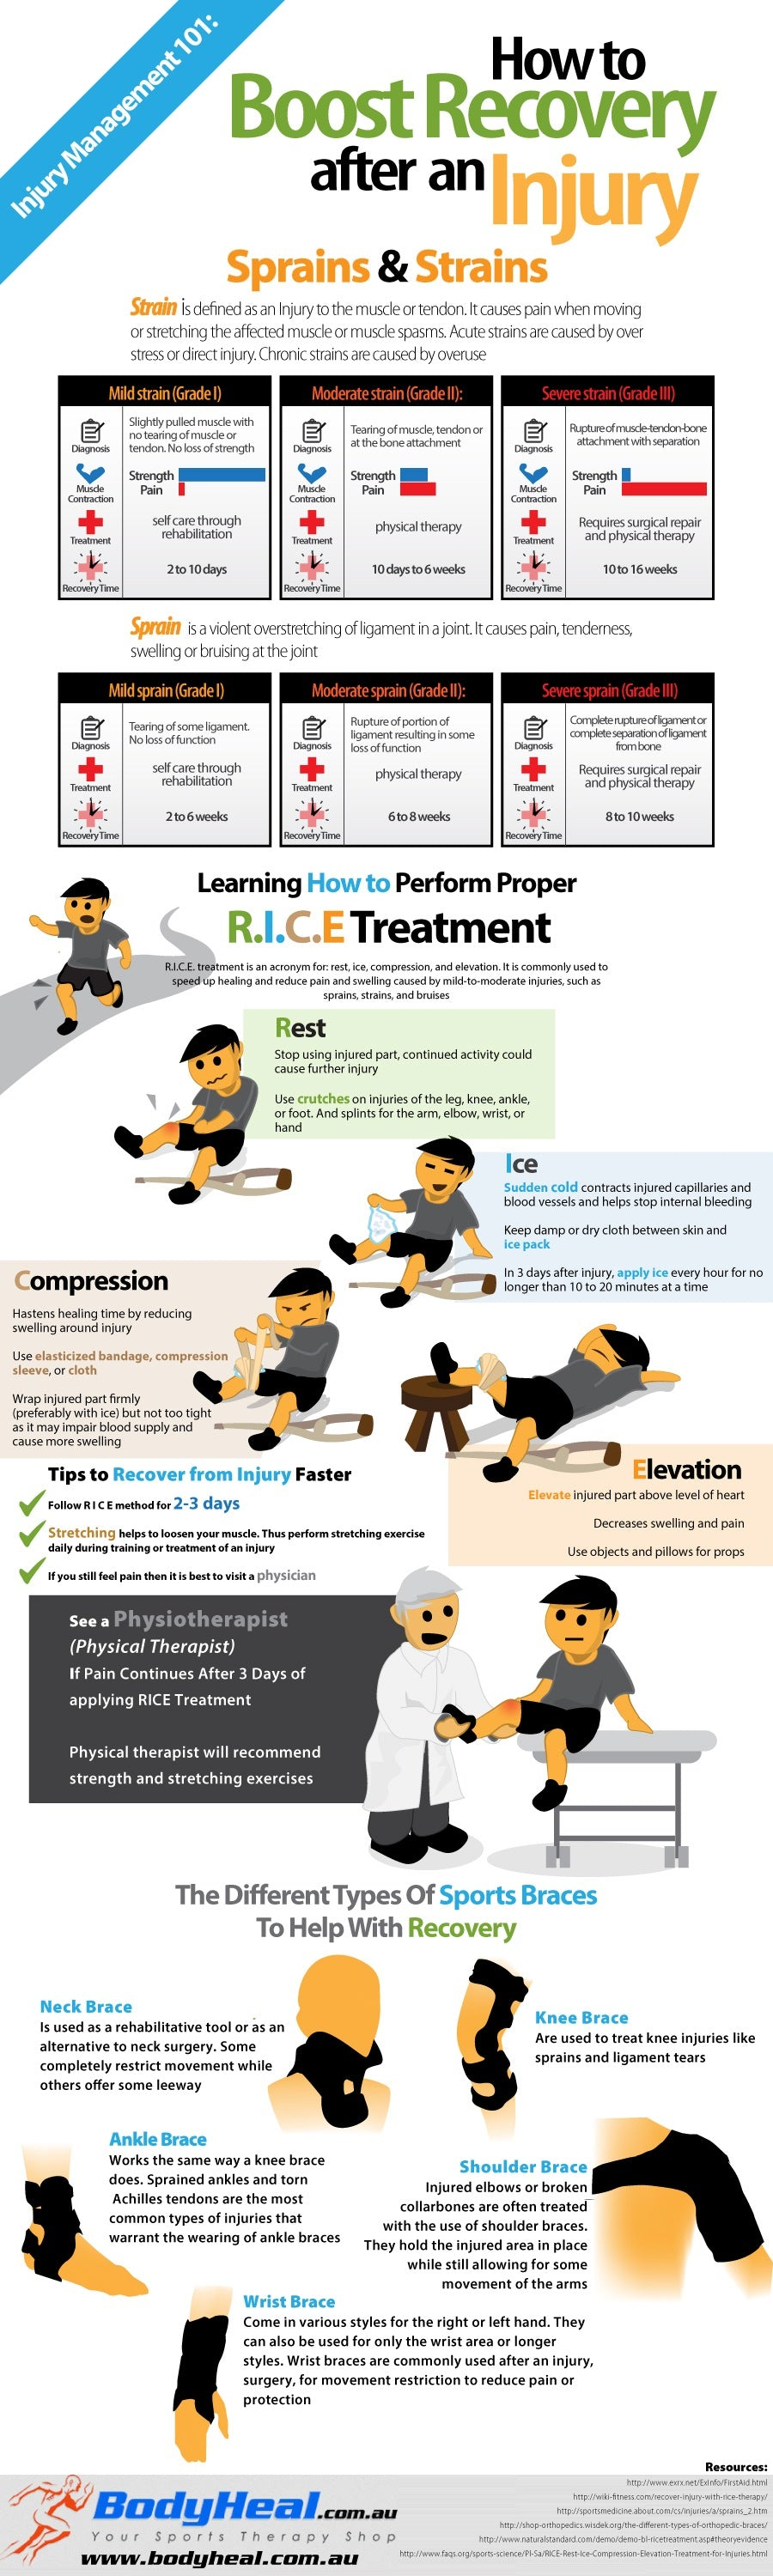 recovering from sports injury with rice treatment infographic